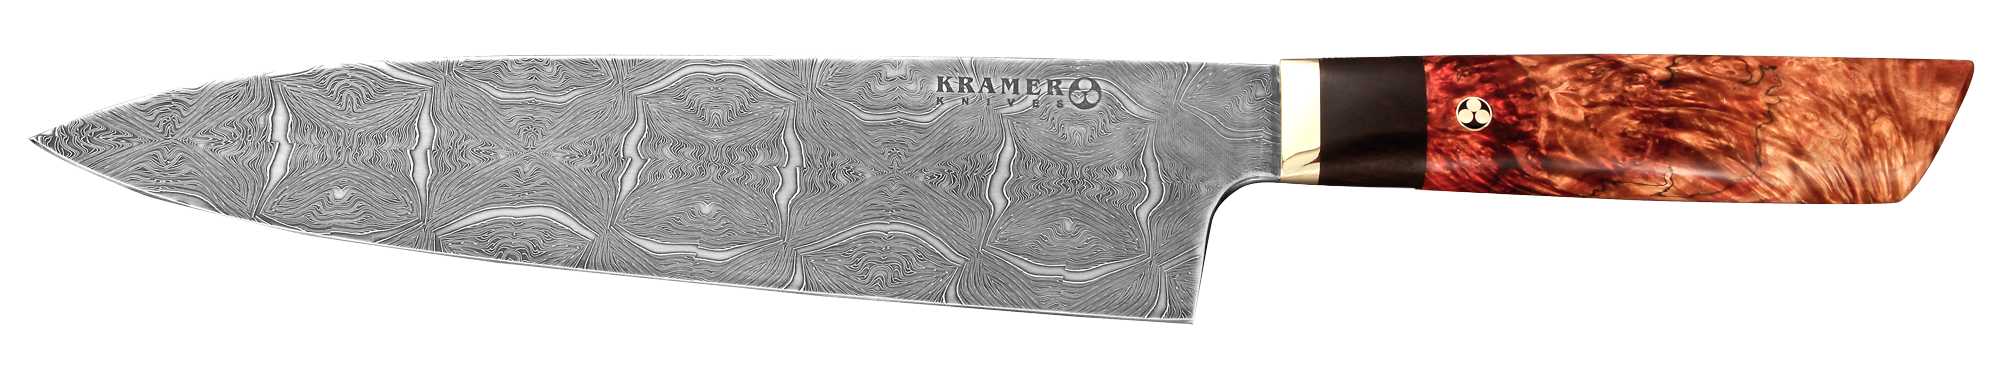 "10"" Meiji Chef Mosaic Damascus with Spalted Box Elder Handle 